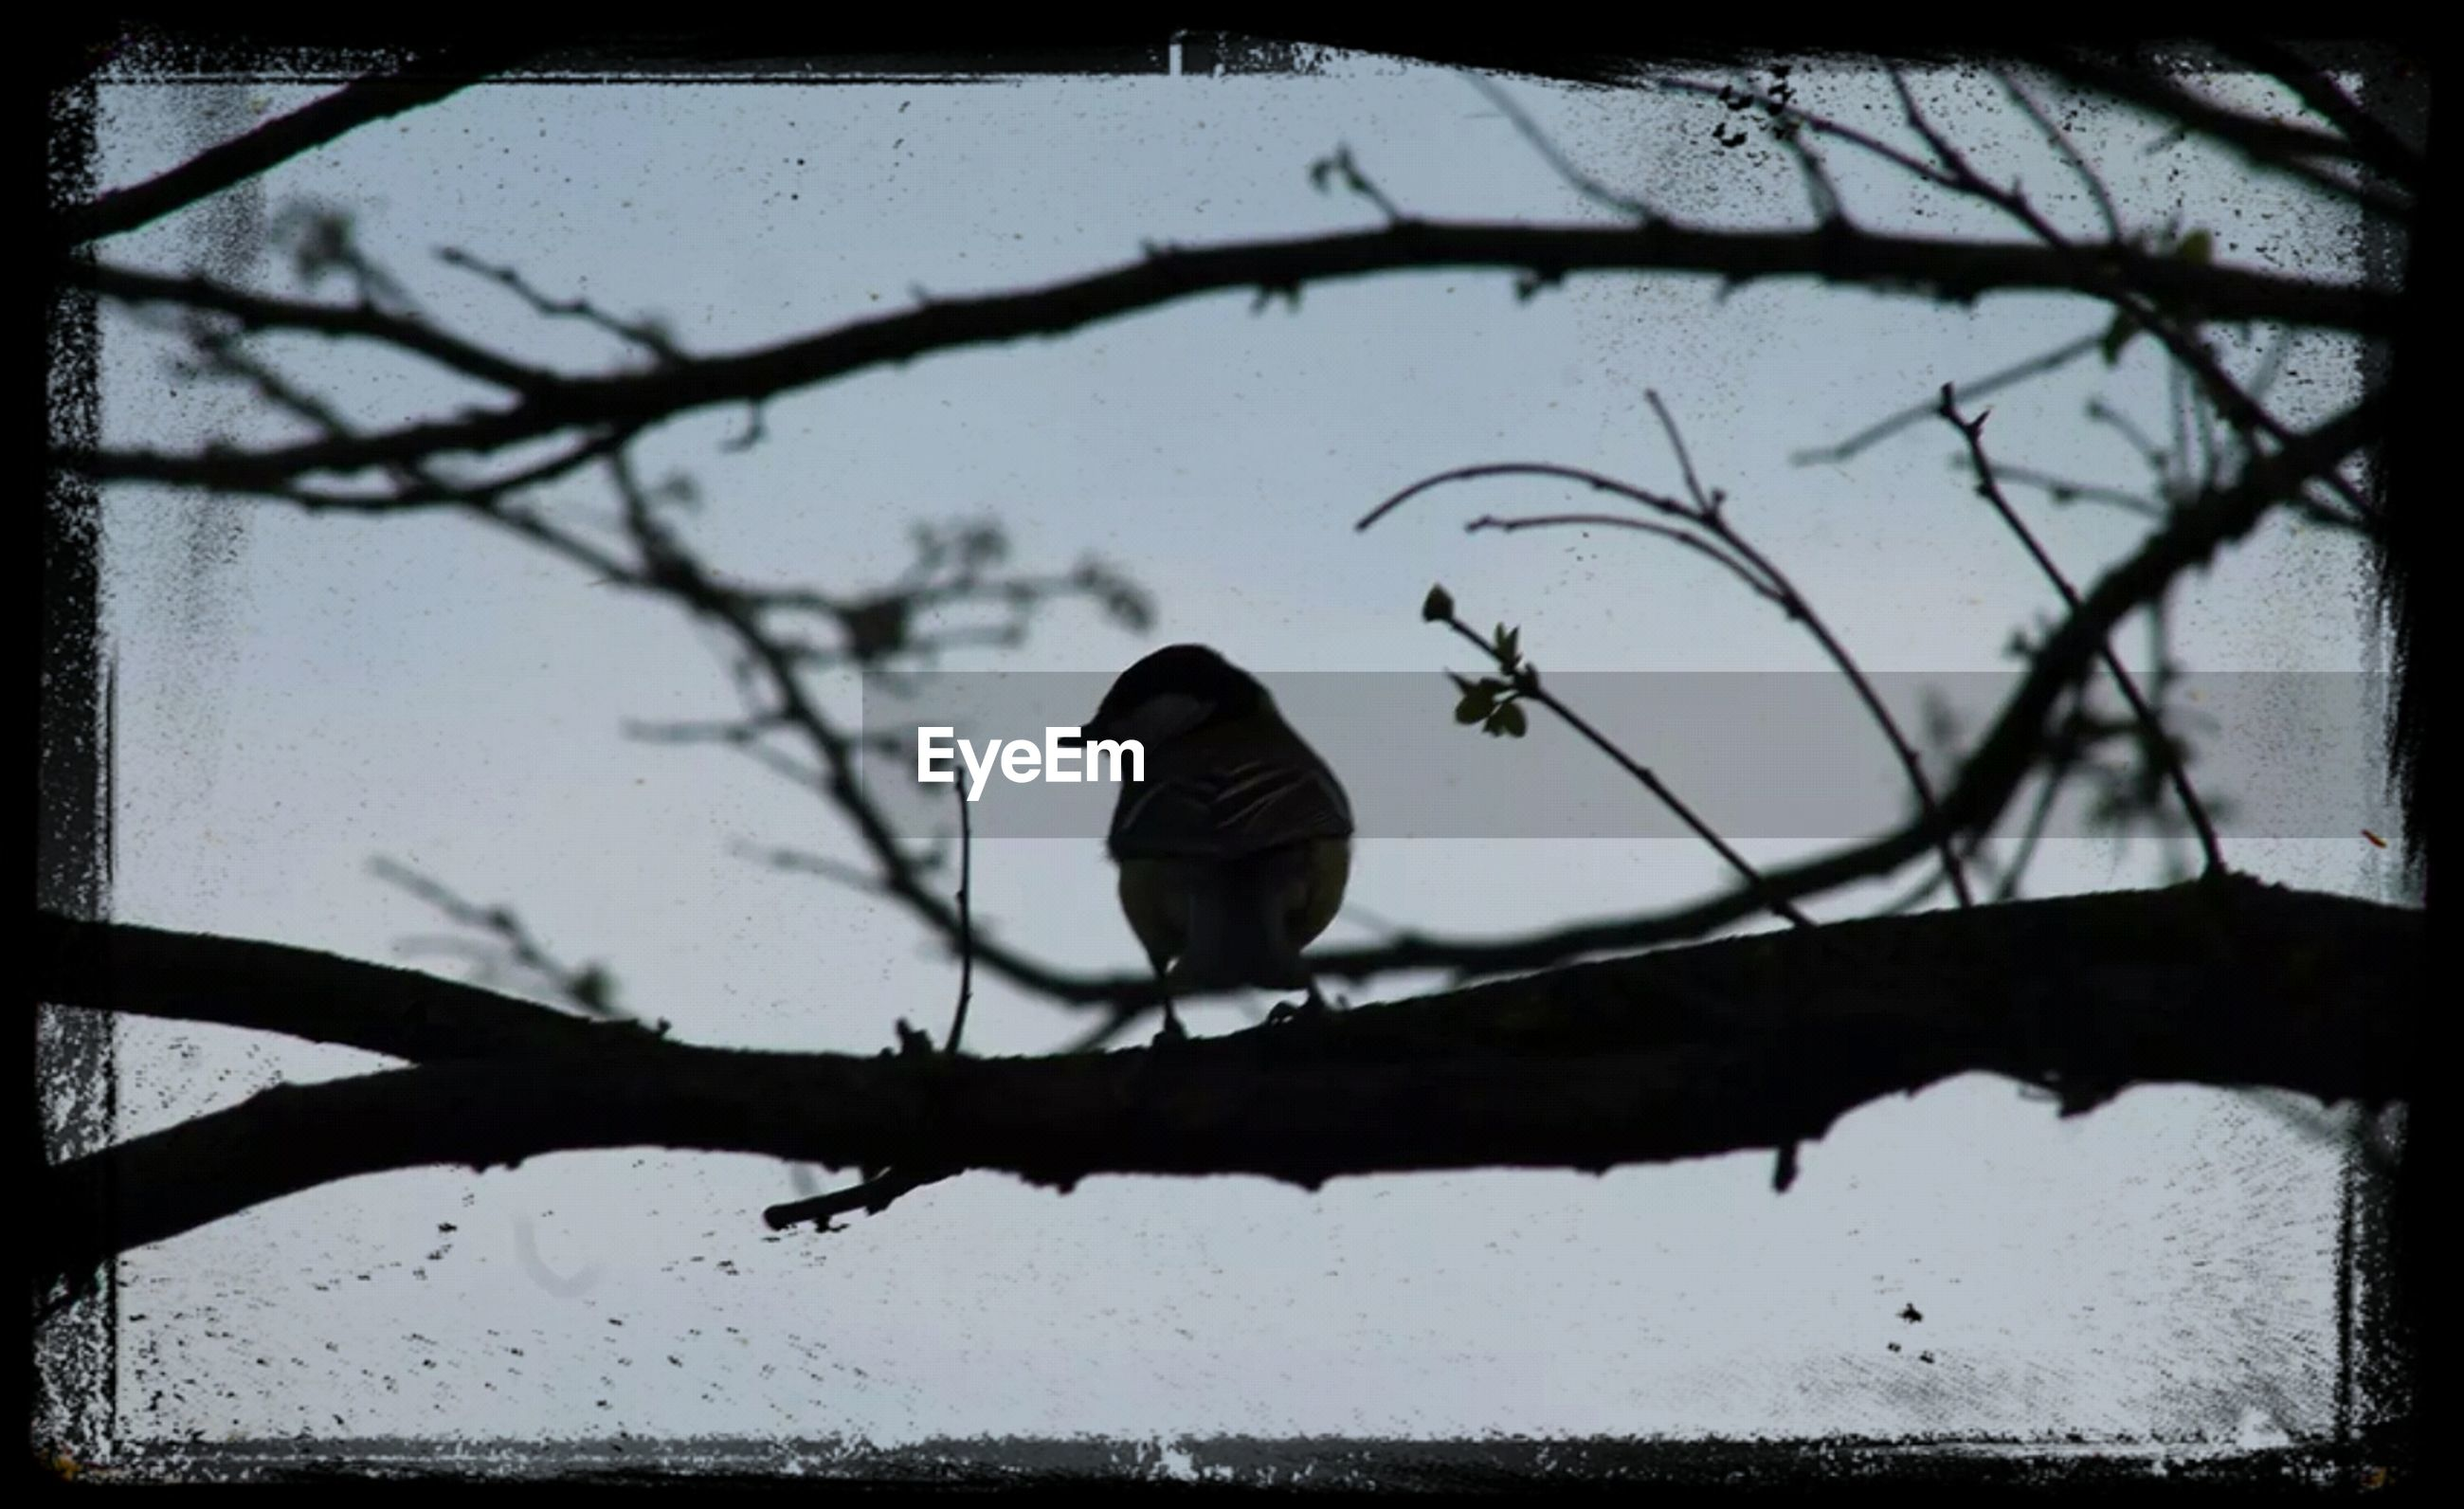 animal themes, animals in the wild, bird, wildlife, branch, perching, one animal, bare tree, low angle view, tree, nature, silhouette, focus on foreground, transfer print, full length, auto post production filter, outdoors, day, no people, sky